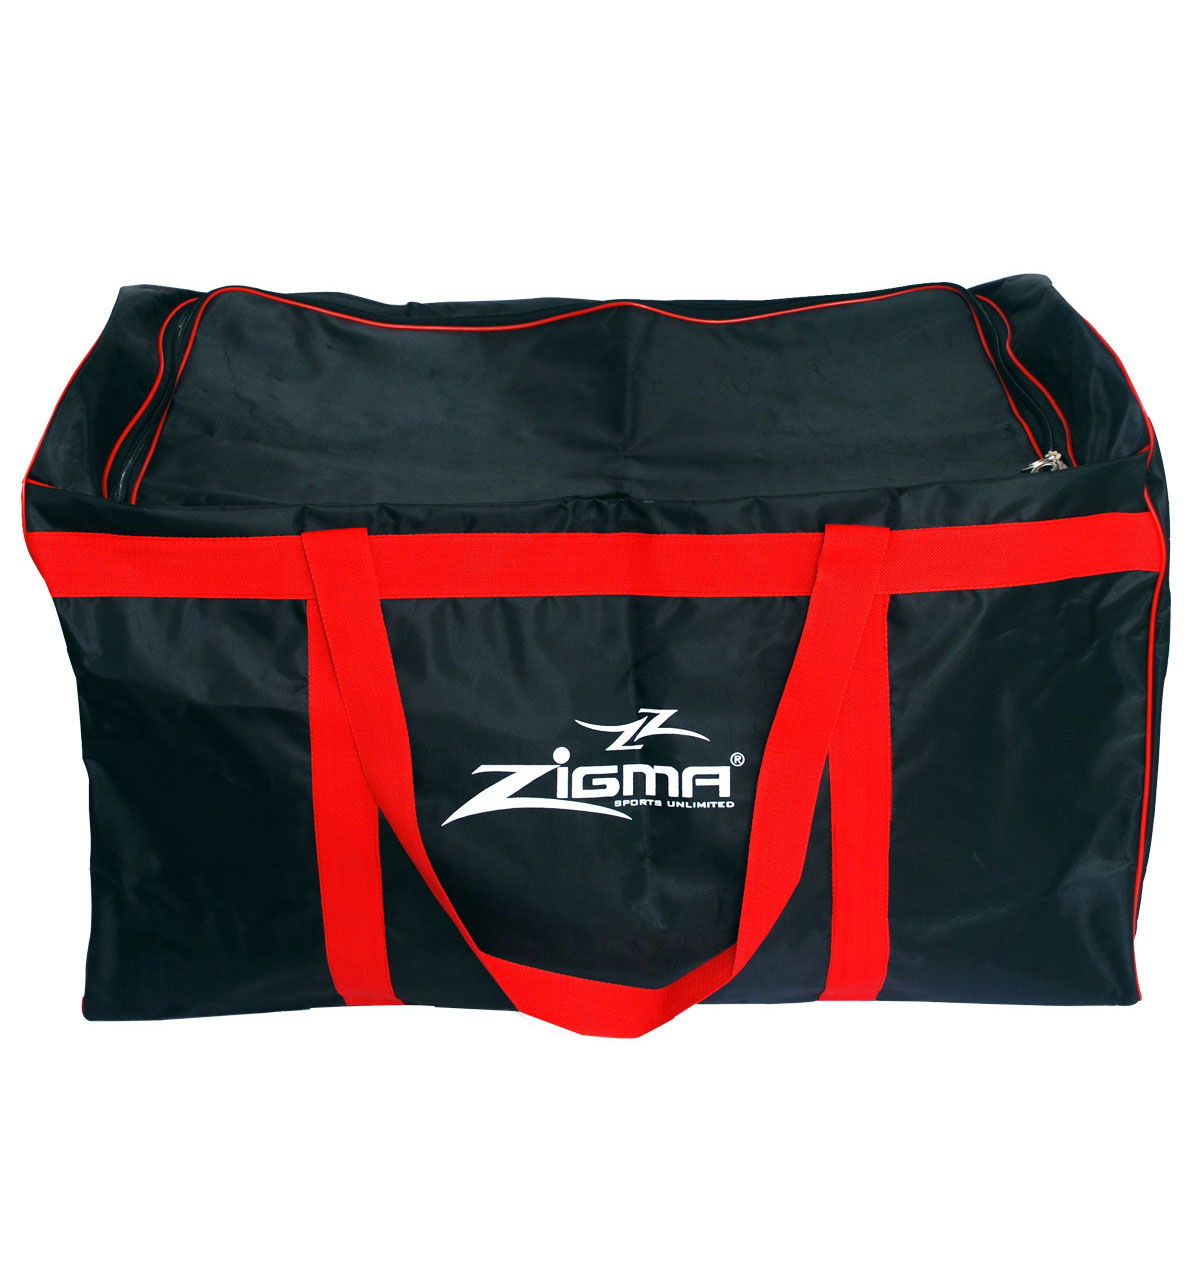 Cricket Kit Bag. Loading zoom c0a80a5ae7096